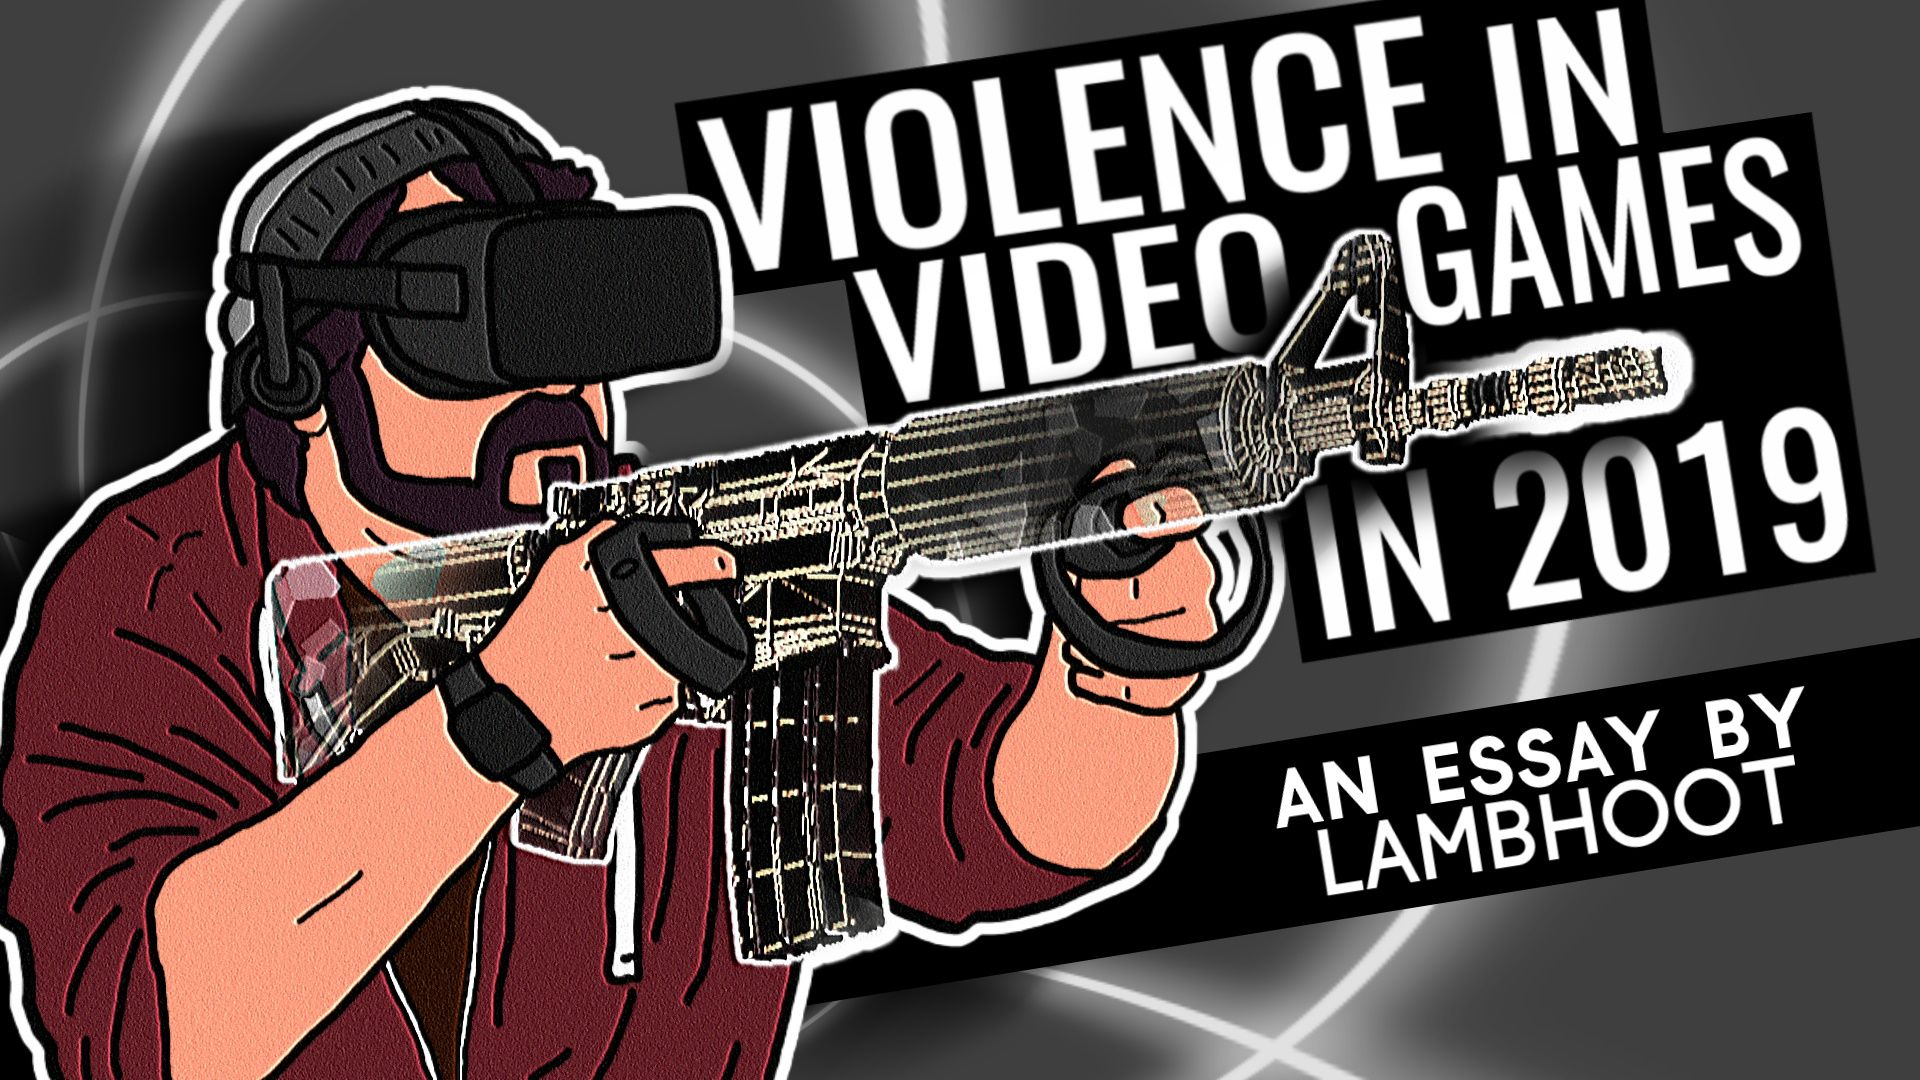 Violence in VR Video Games in 2019 (Essay)